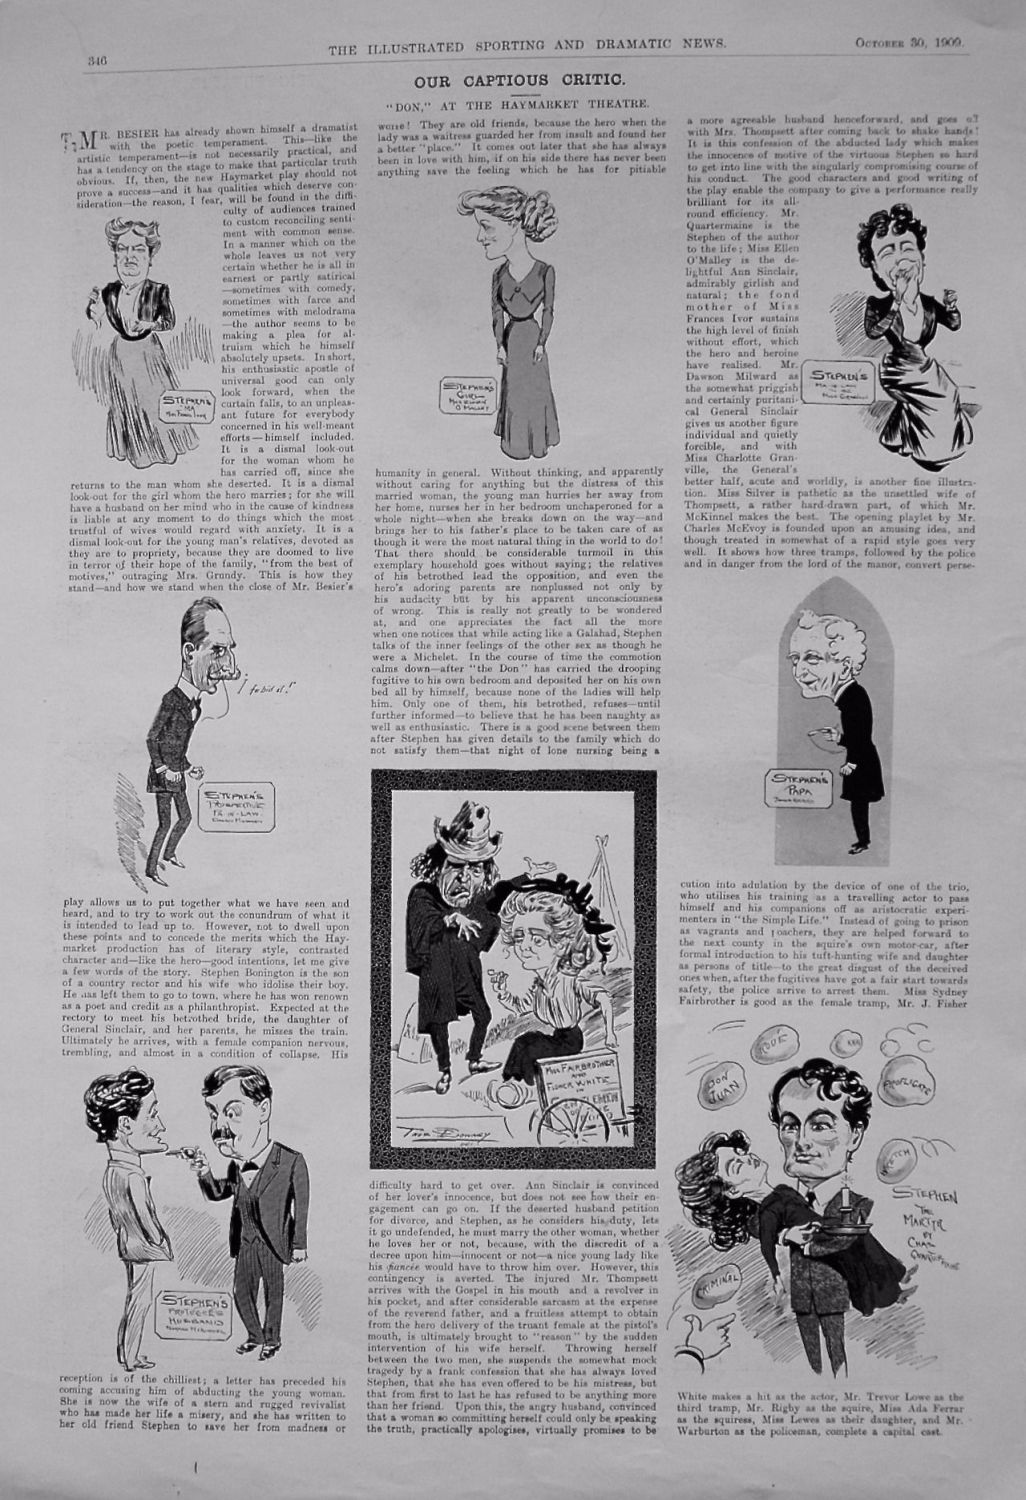 Our Captious Critic. October 30th 1909.